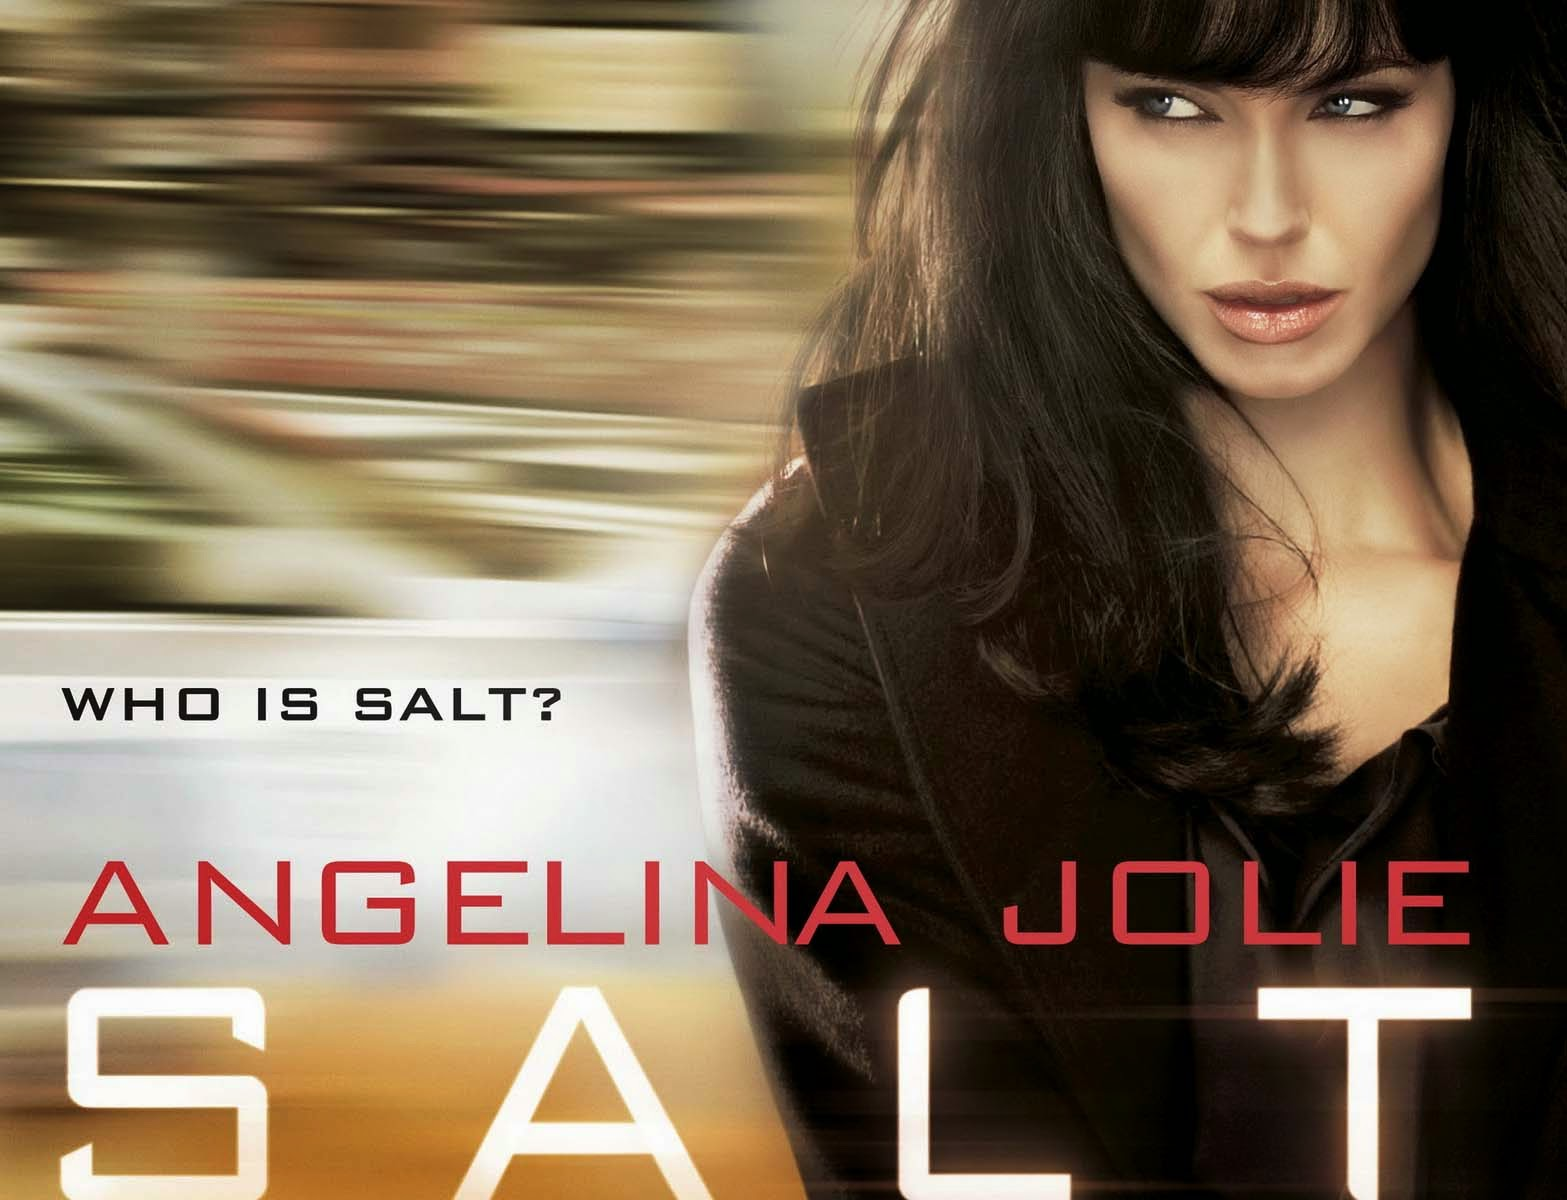 Angelina Jolie Movies: the Salt Angelina Jolie movie ...